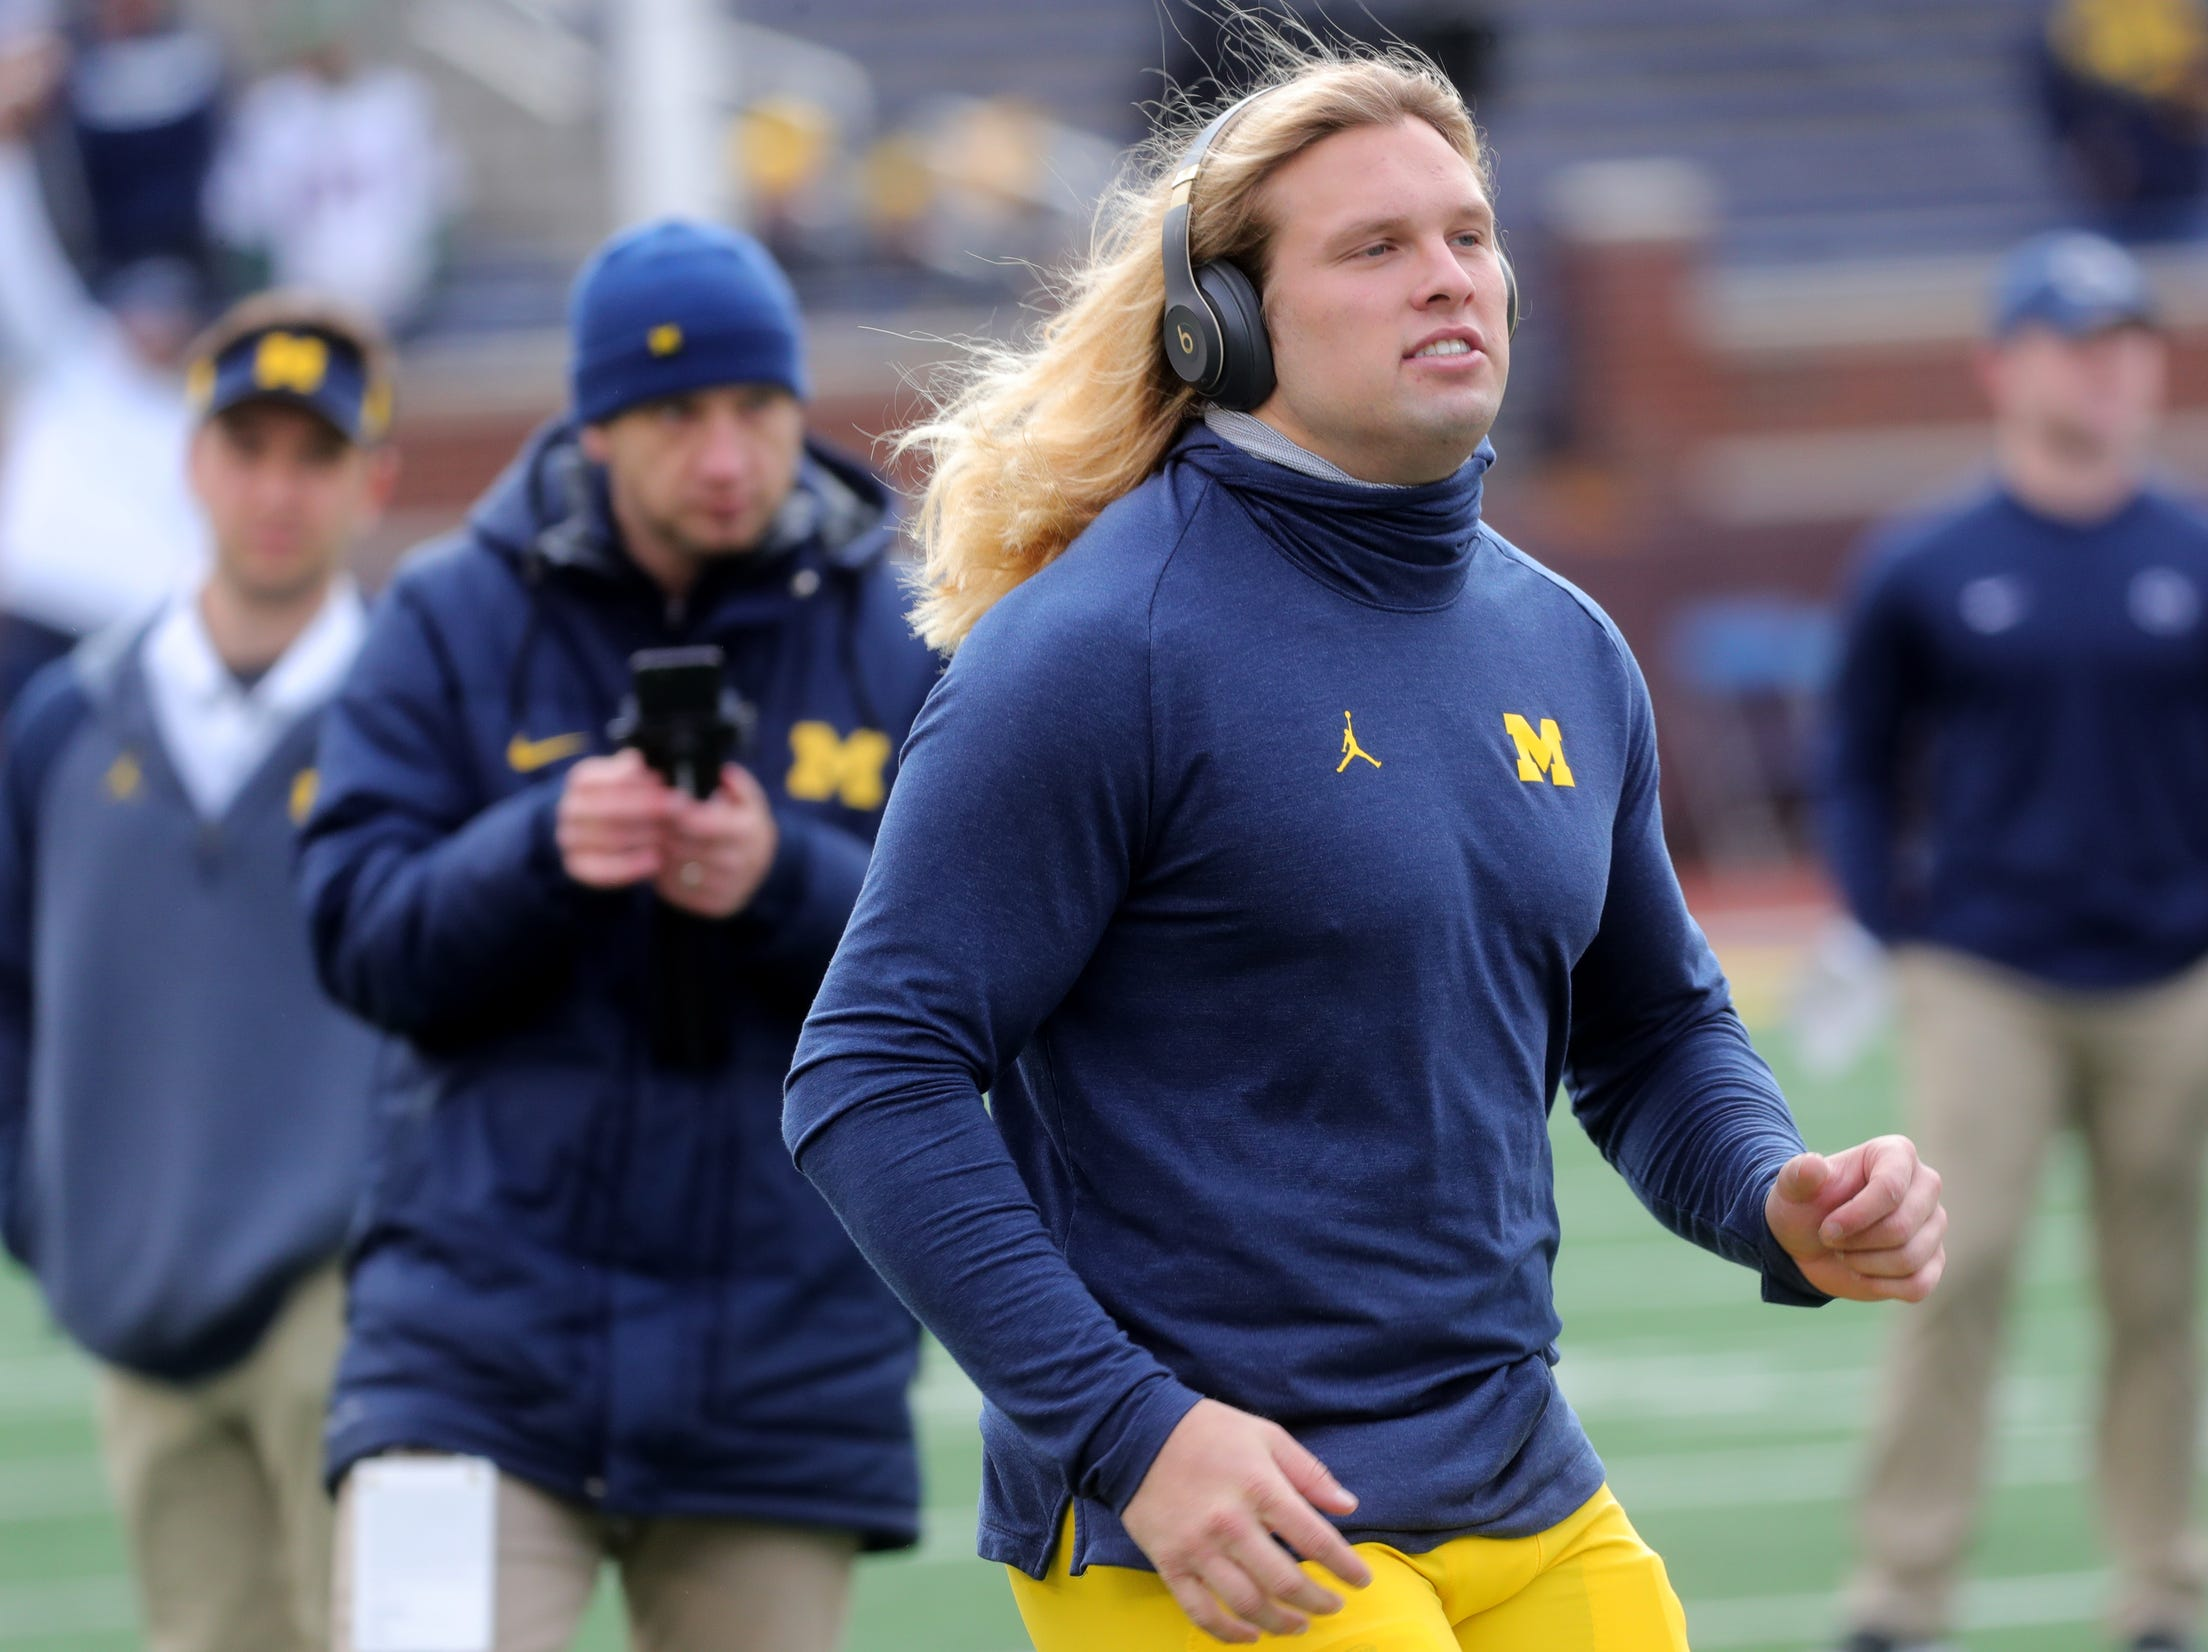 Michigan linebacker Chase Winovich warms up on the field prior to the start of the Michigan and Penn State game on Saturday, Nov. 3, 2018 at Michigan Stadium.